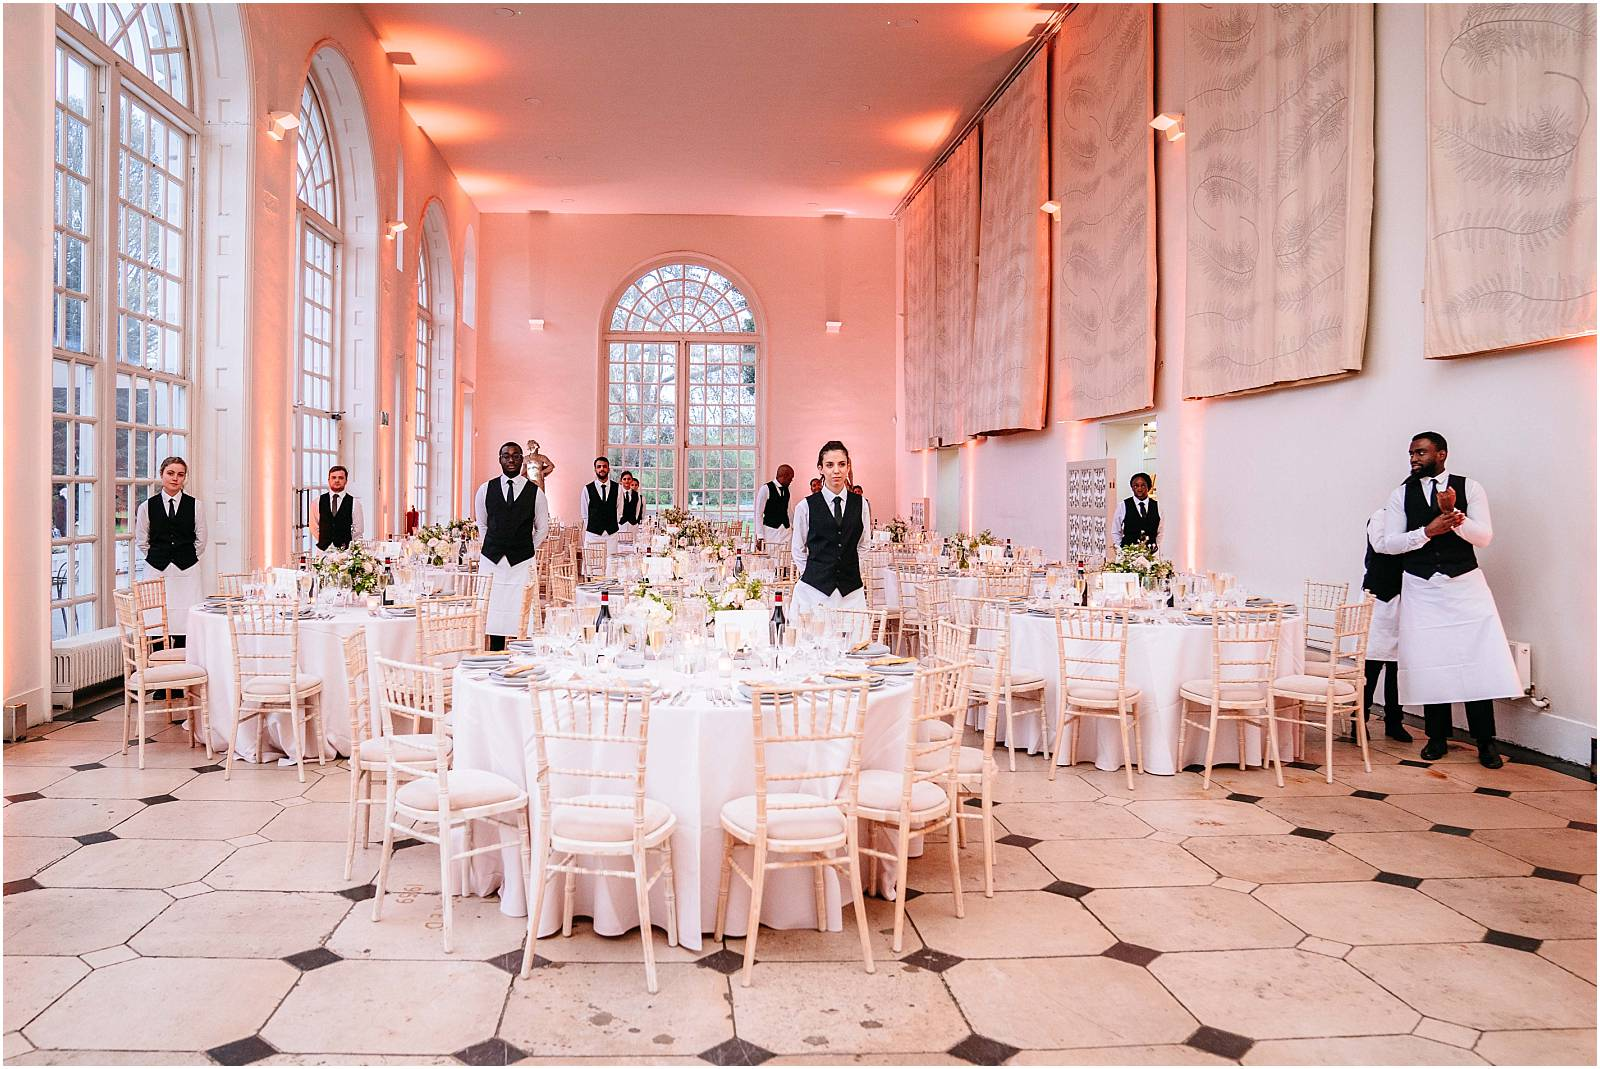 The orangery set up for a wedding reception